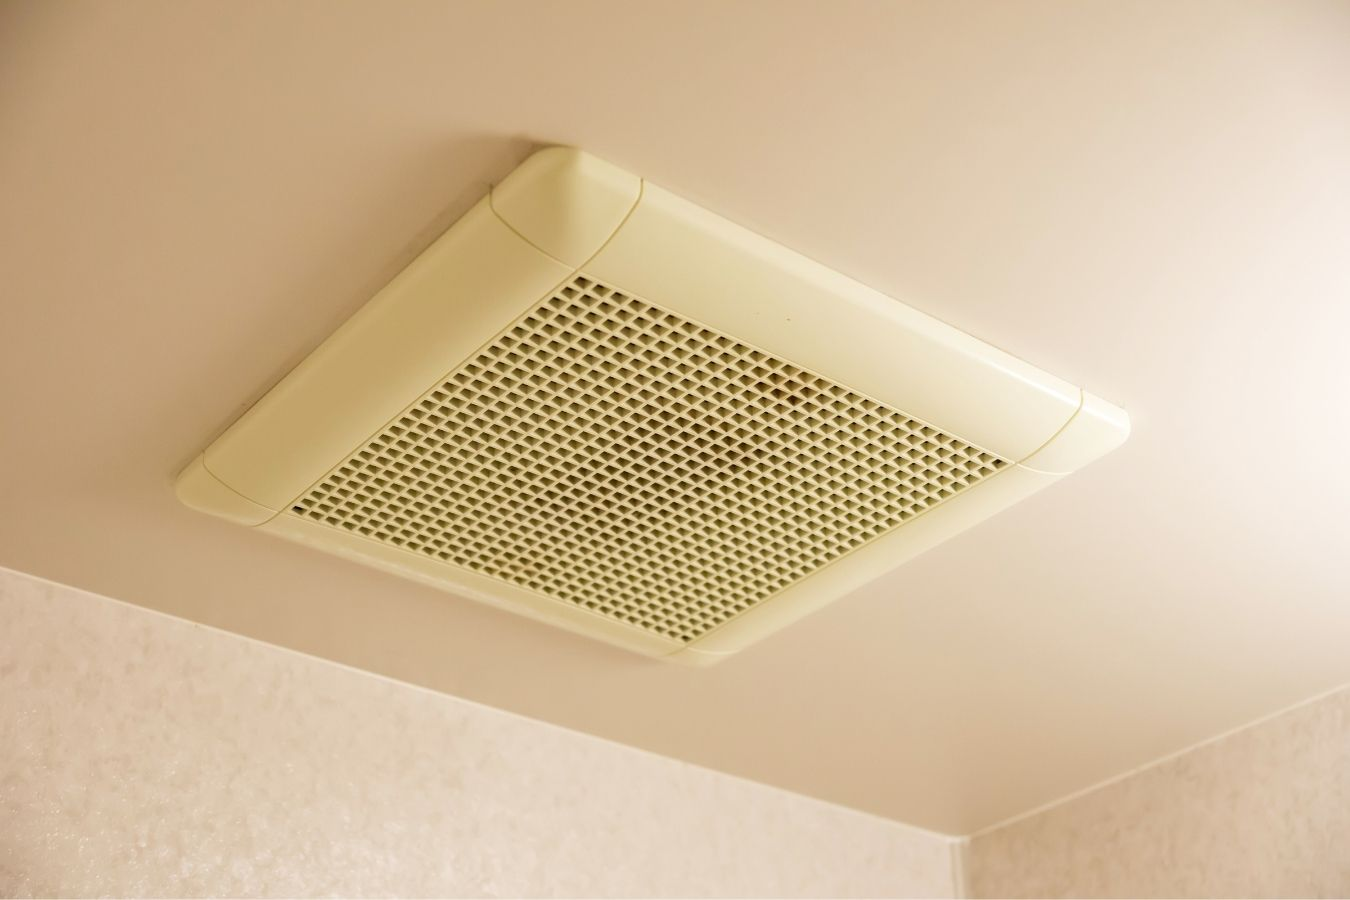 A duct fan installed in a bathroom